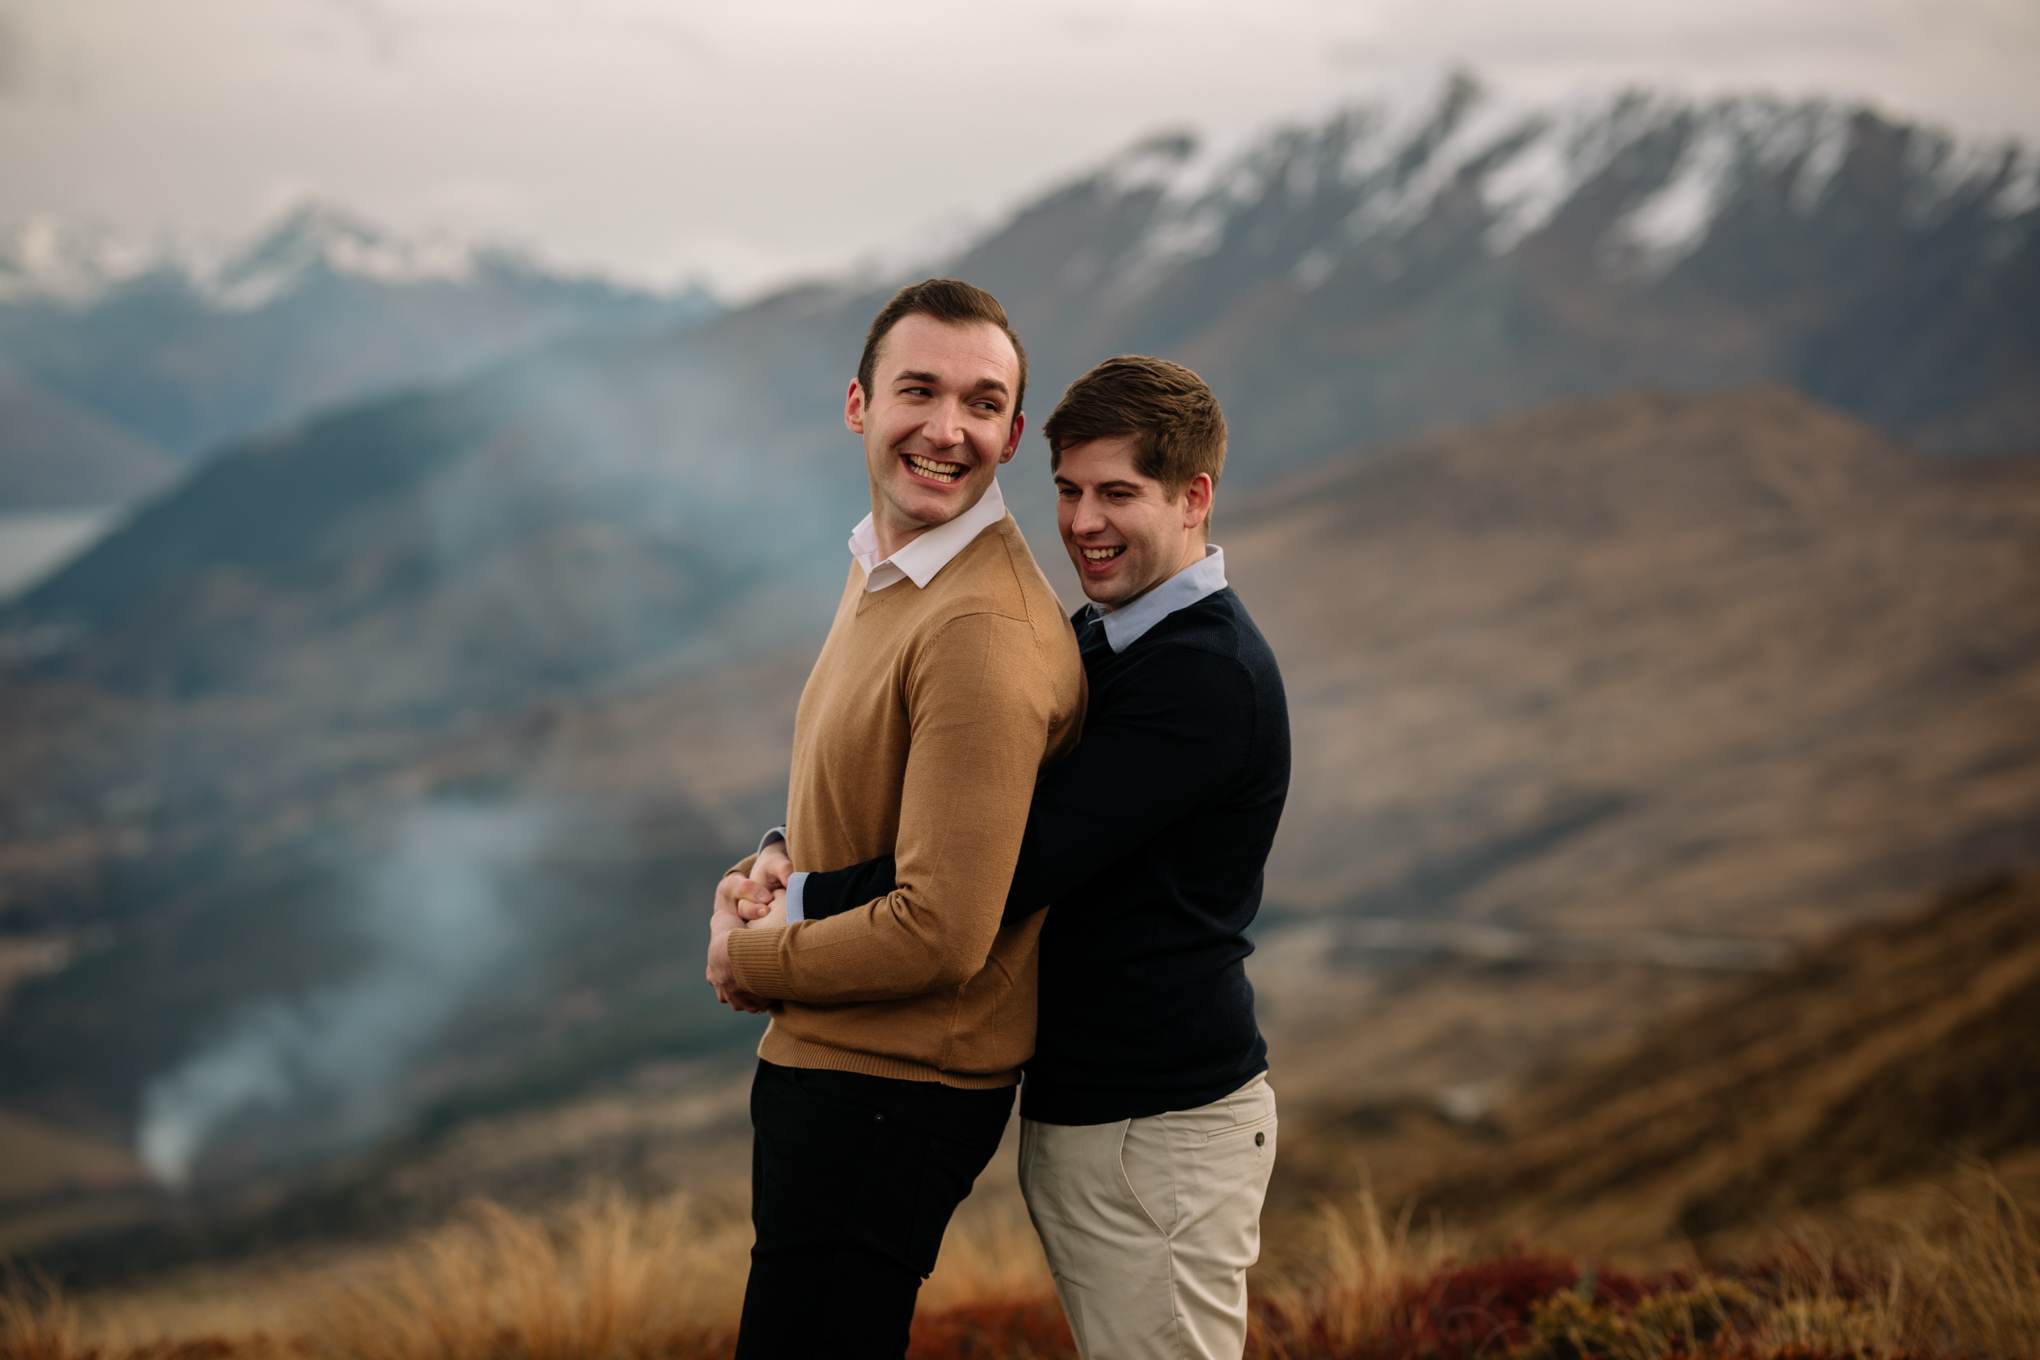 queenstownengagement-57.jpg